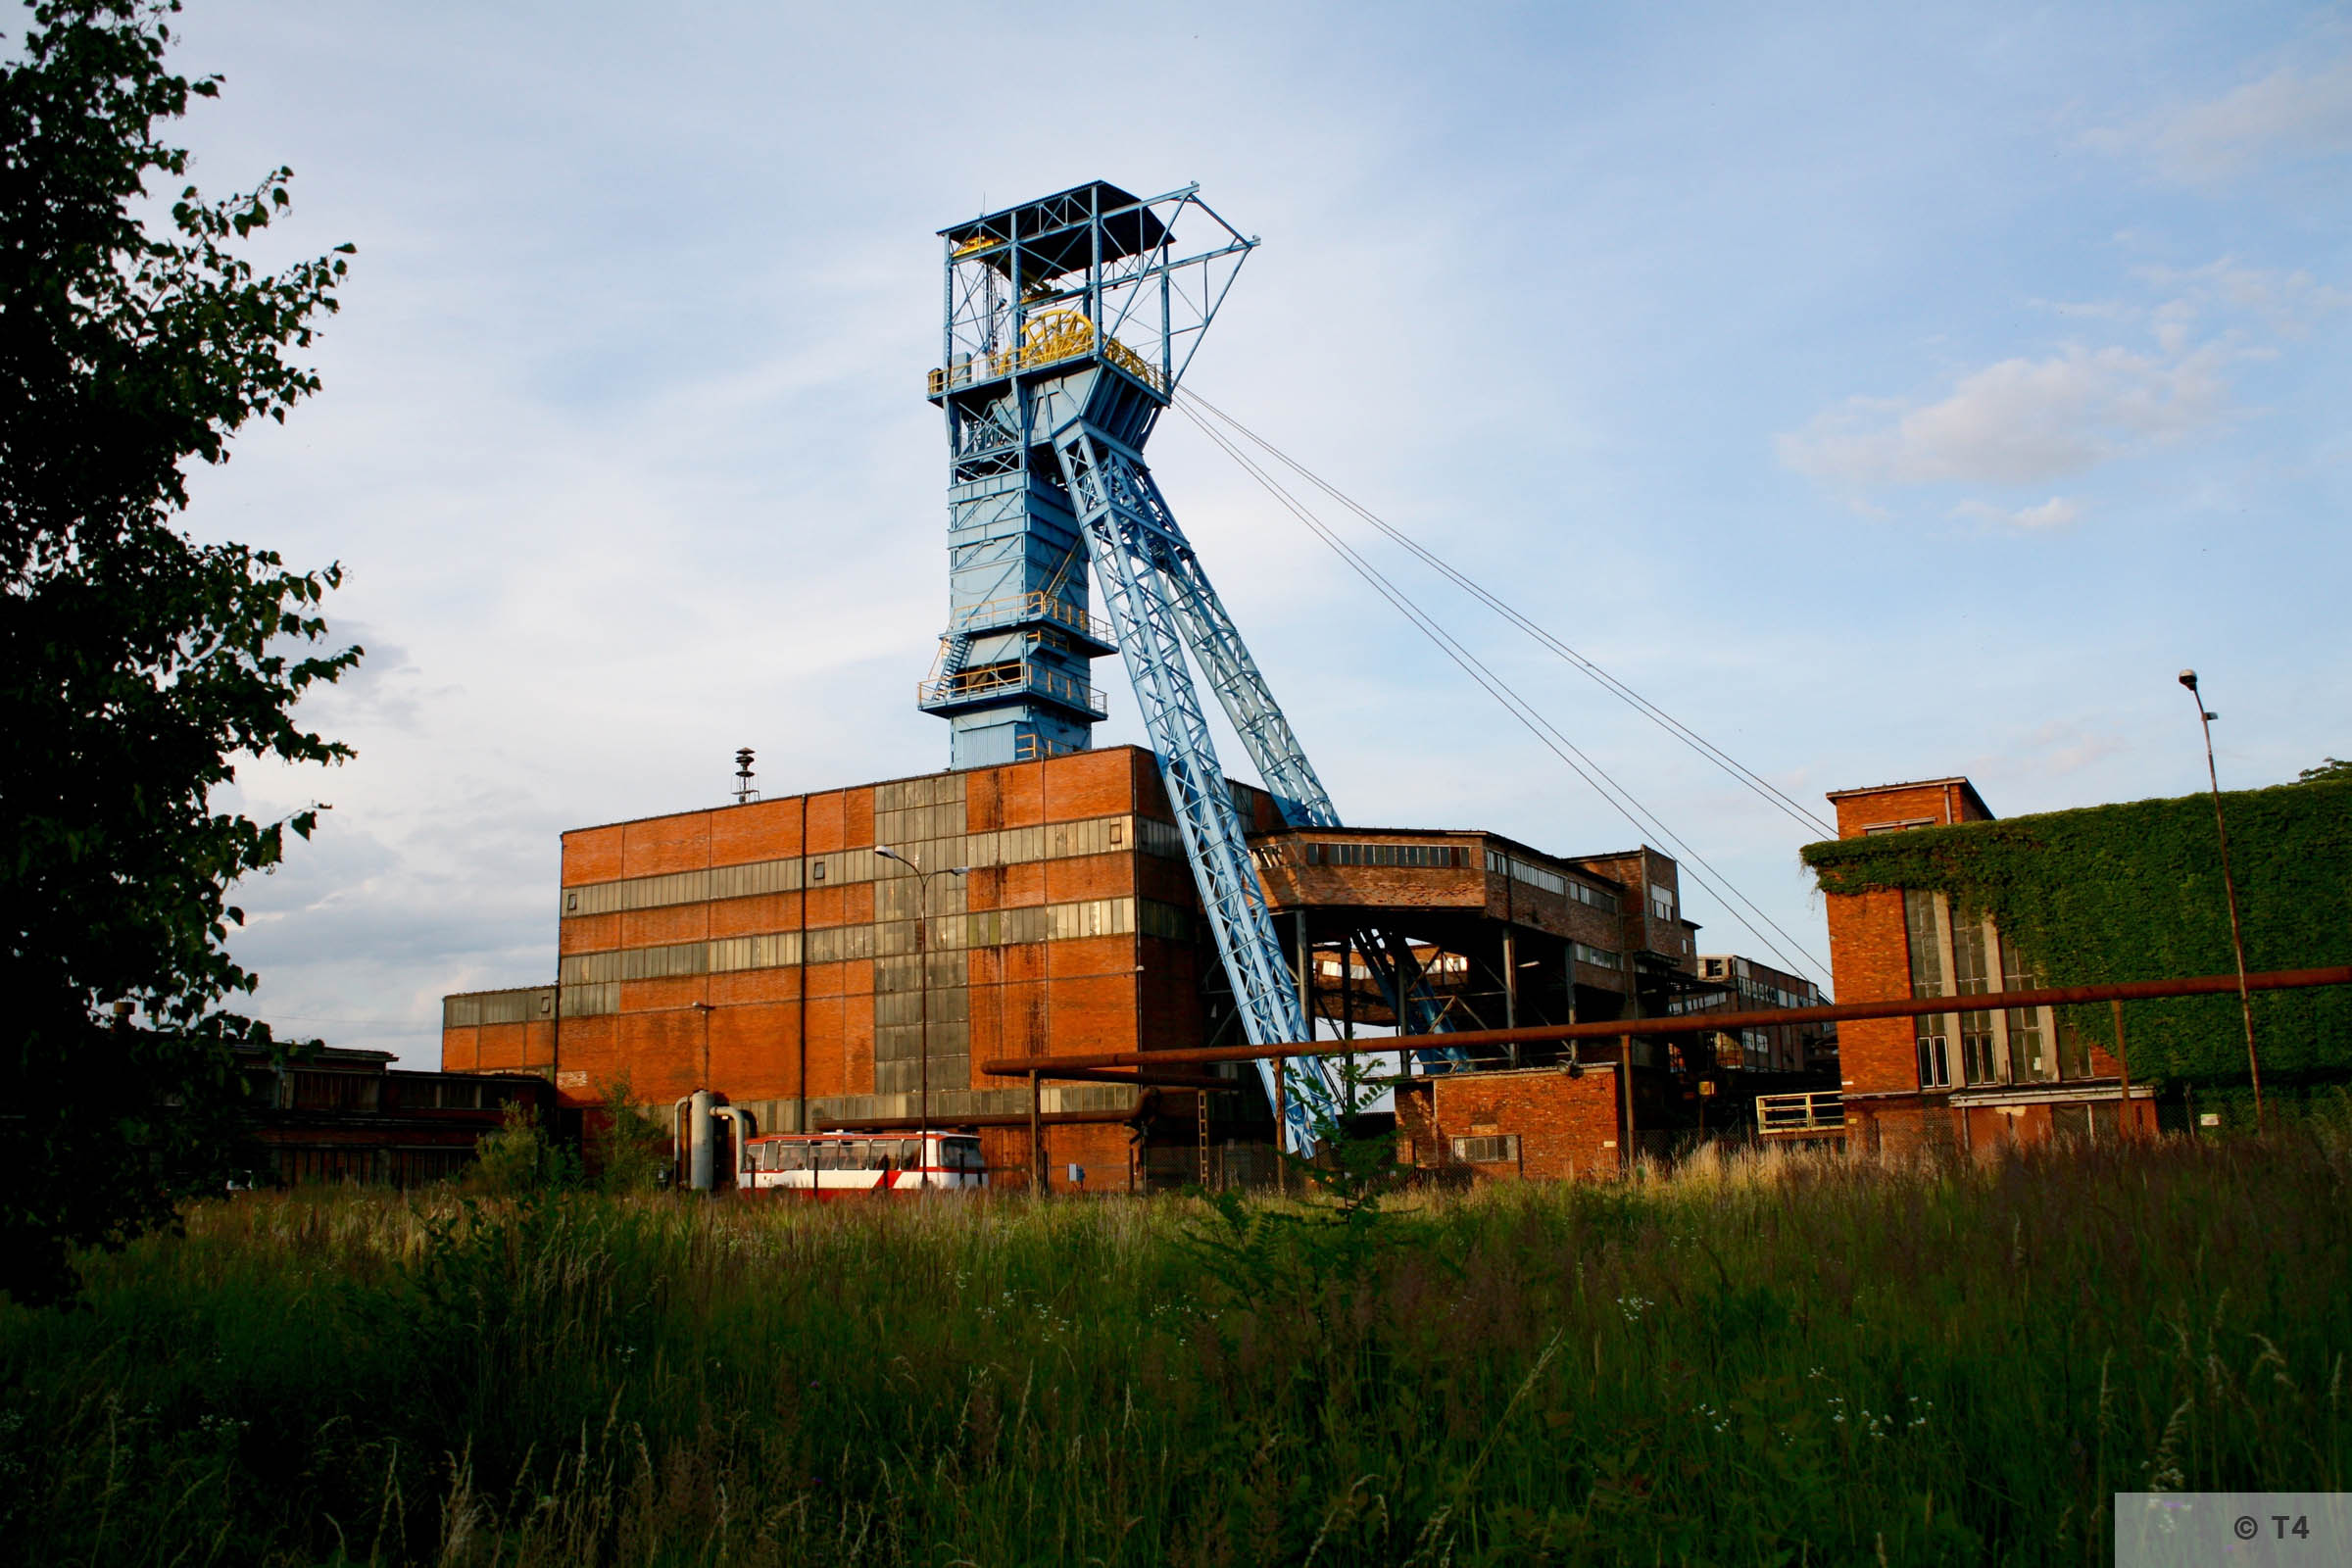 Andrzej III mine shaft in Jawiszowice. Hoisting tower, engine hall and coal reloading bridges. 2007 T4 9055